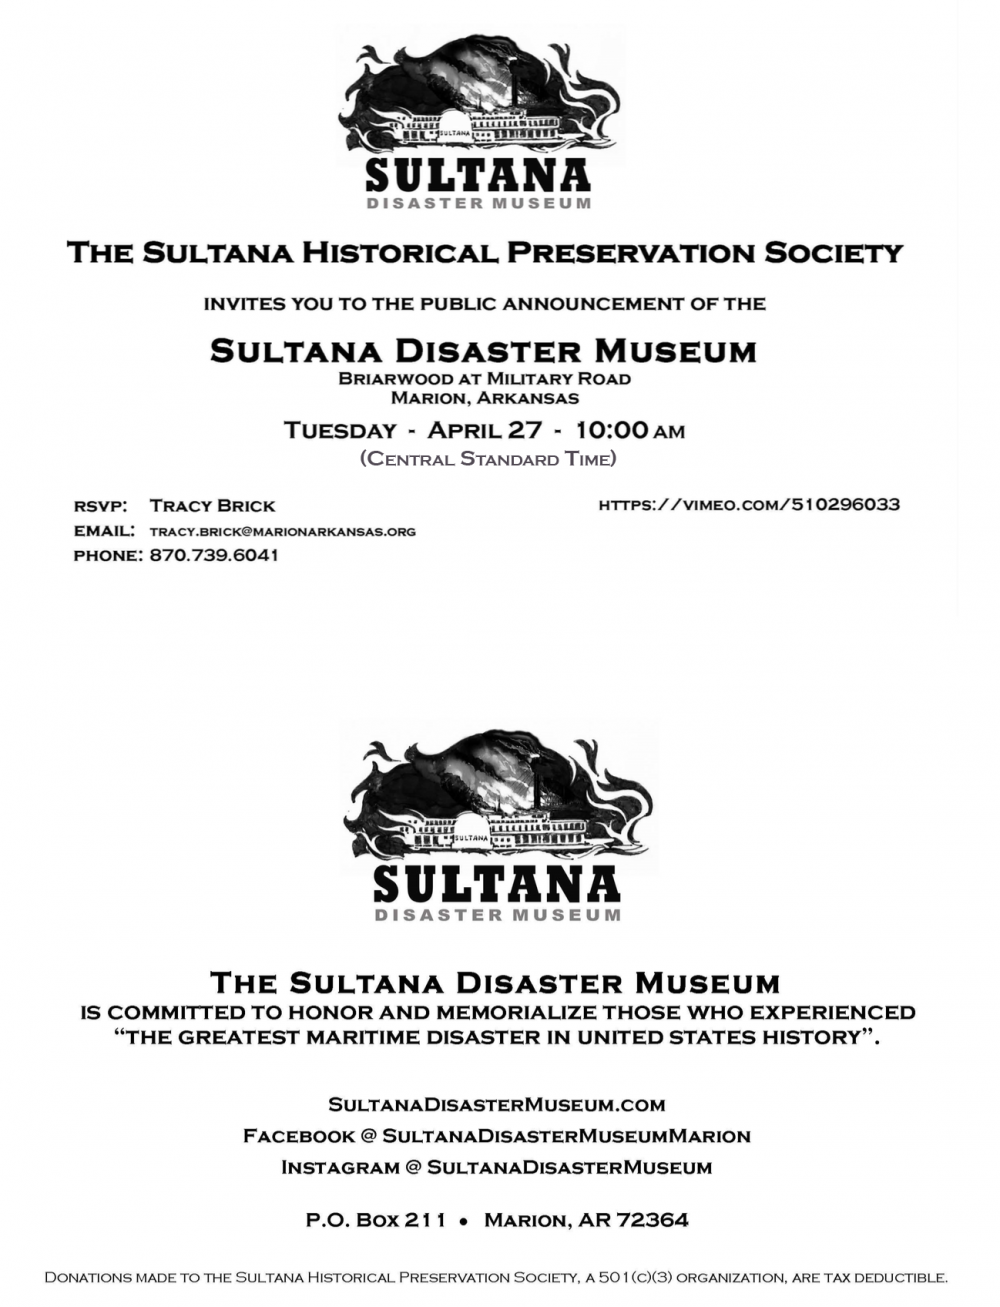 Sultana Disaster Museum Announcement